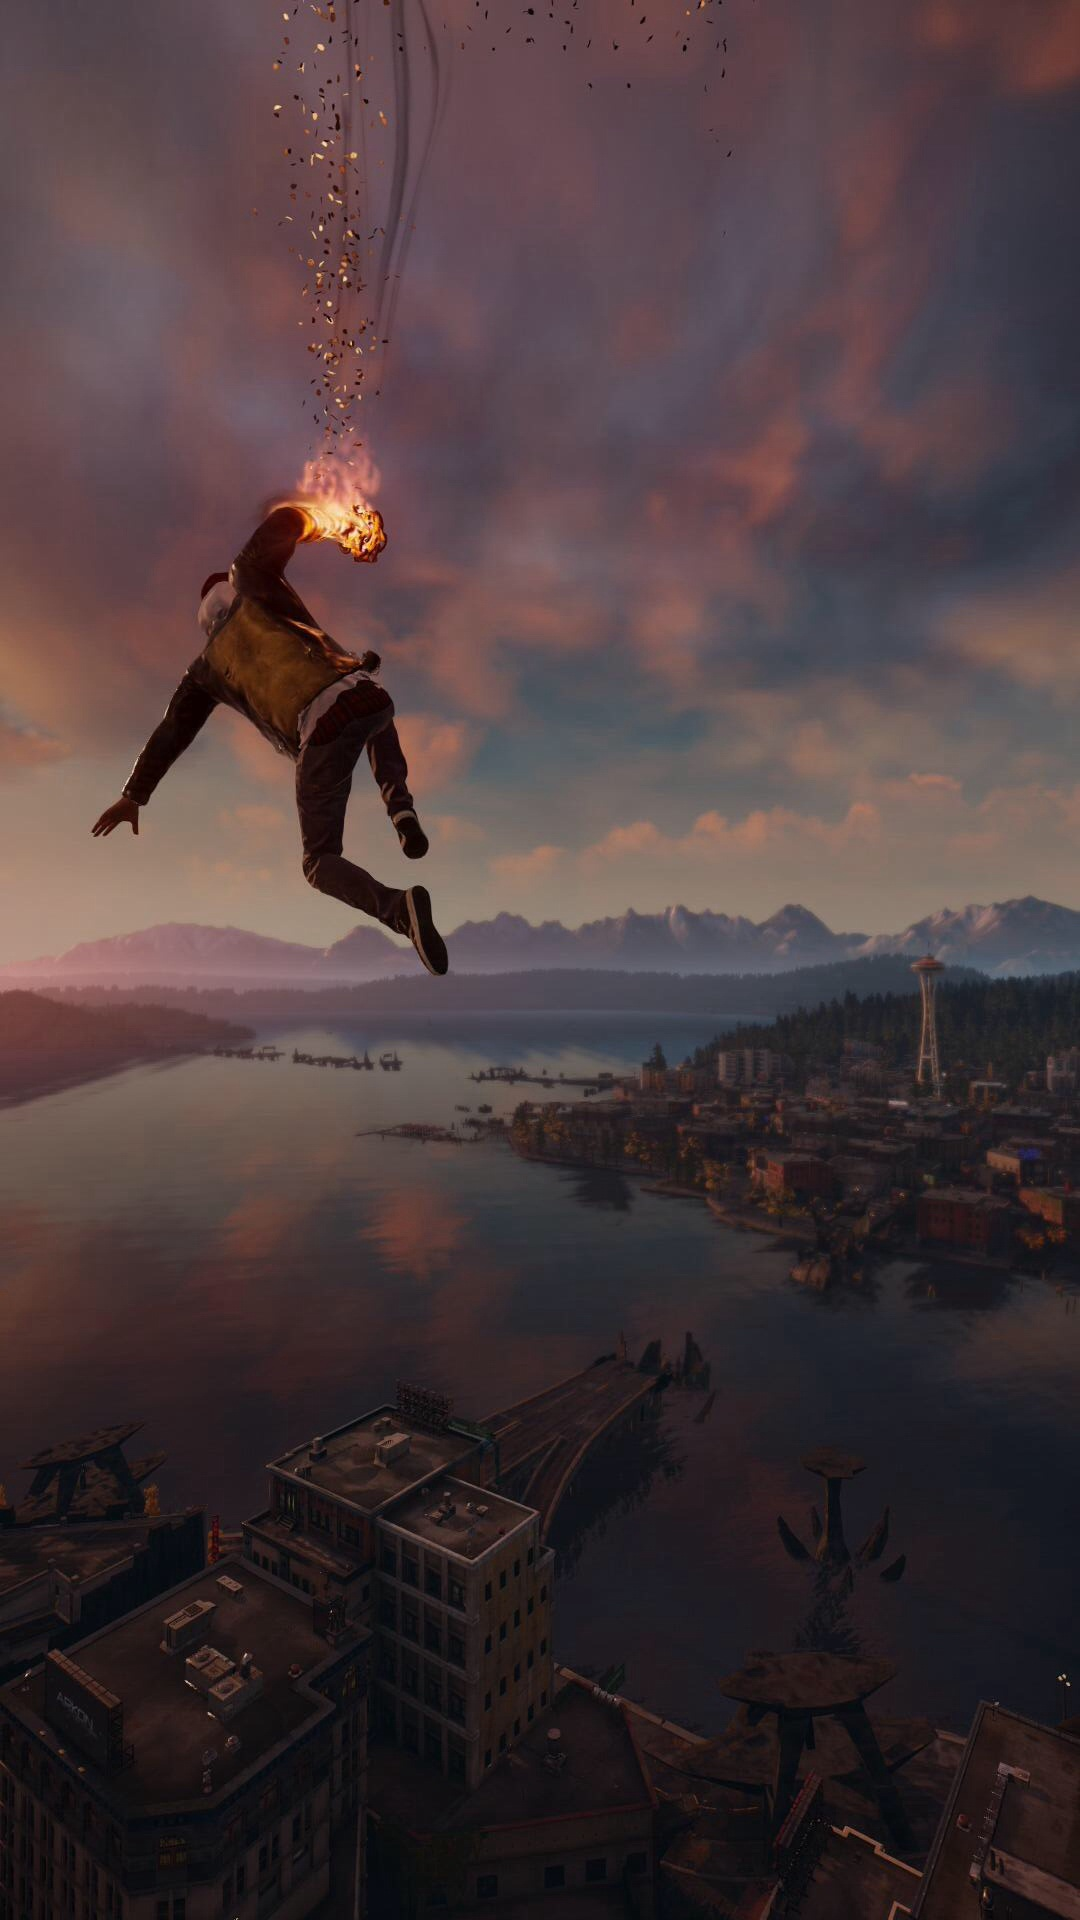 60 Marvelous Game iPhone Wallpapers For Gamers Infamous Second Son Smoke Ability City View iPhone 6 Plus HD Wallpaper